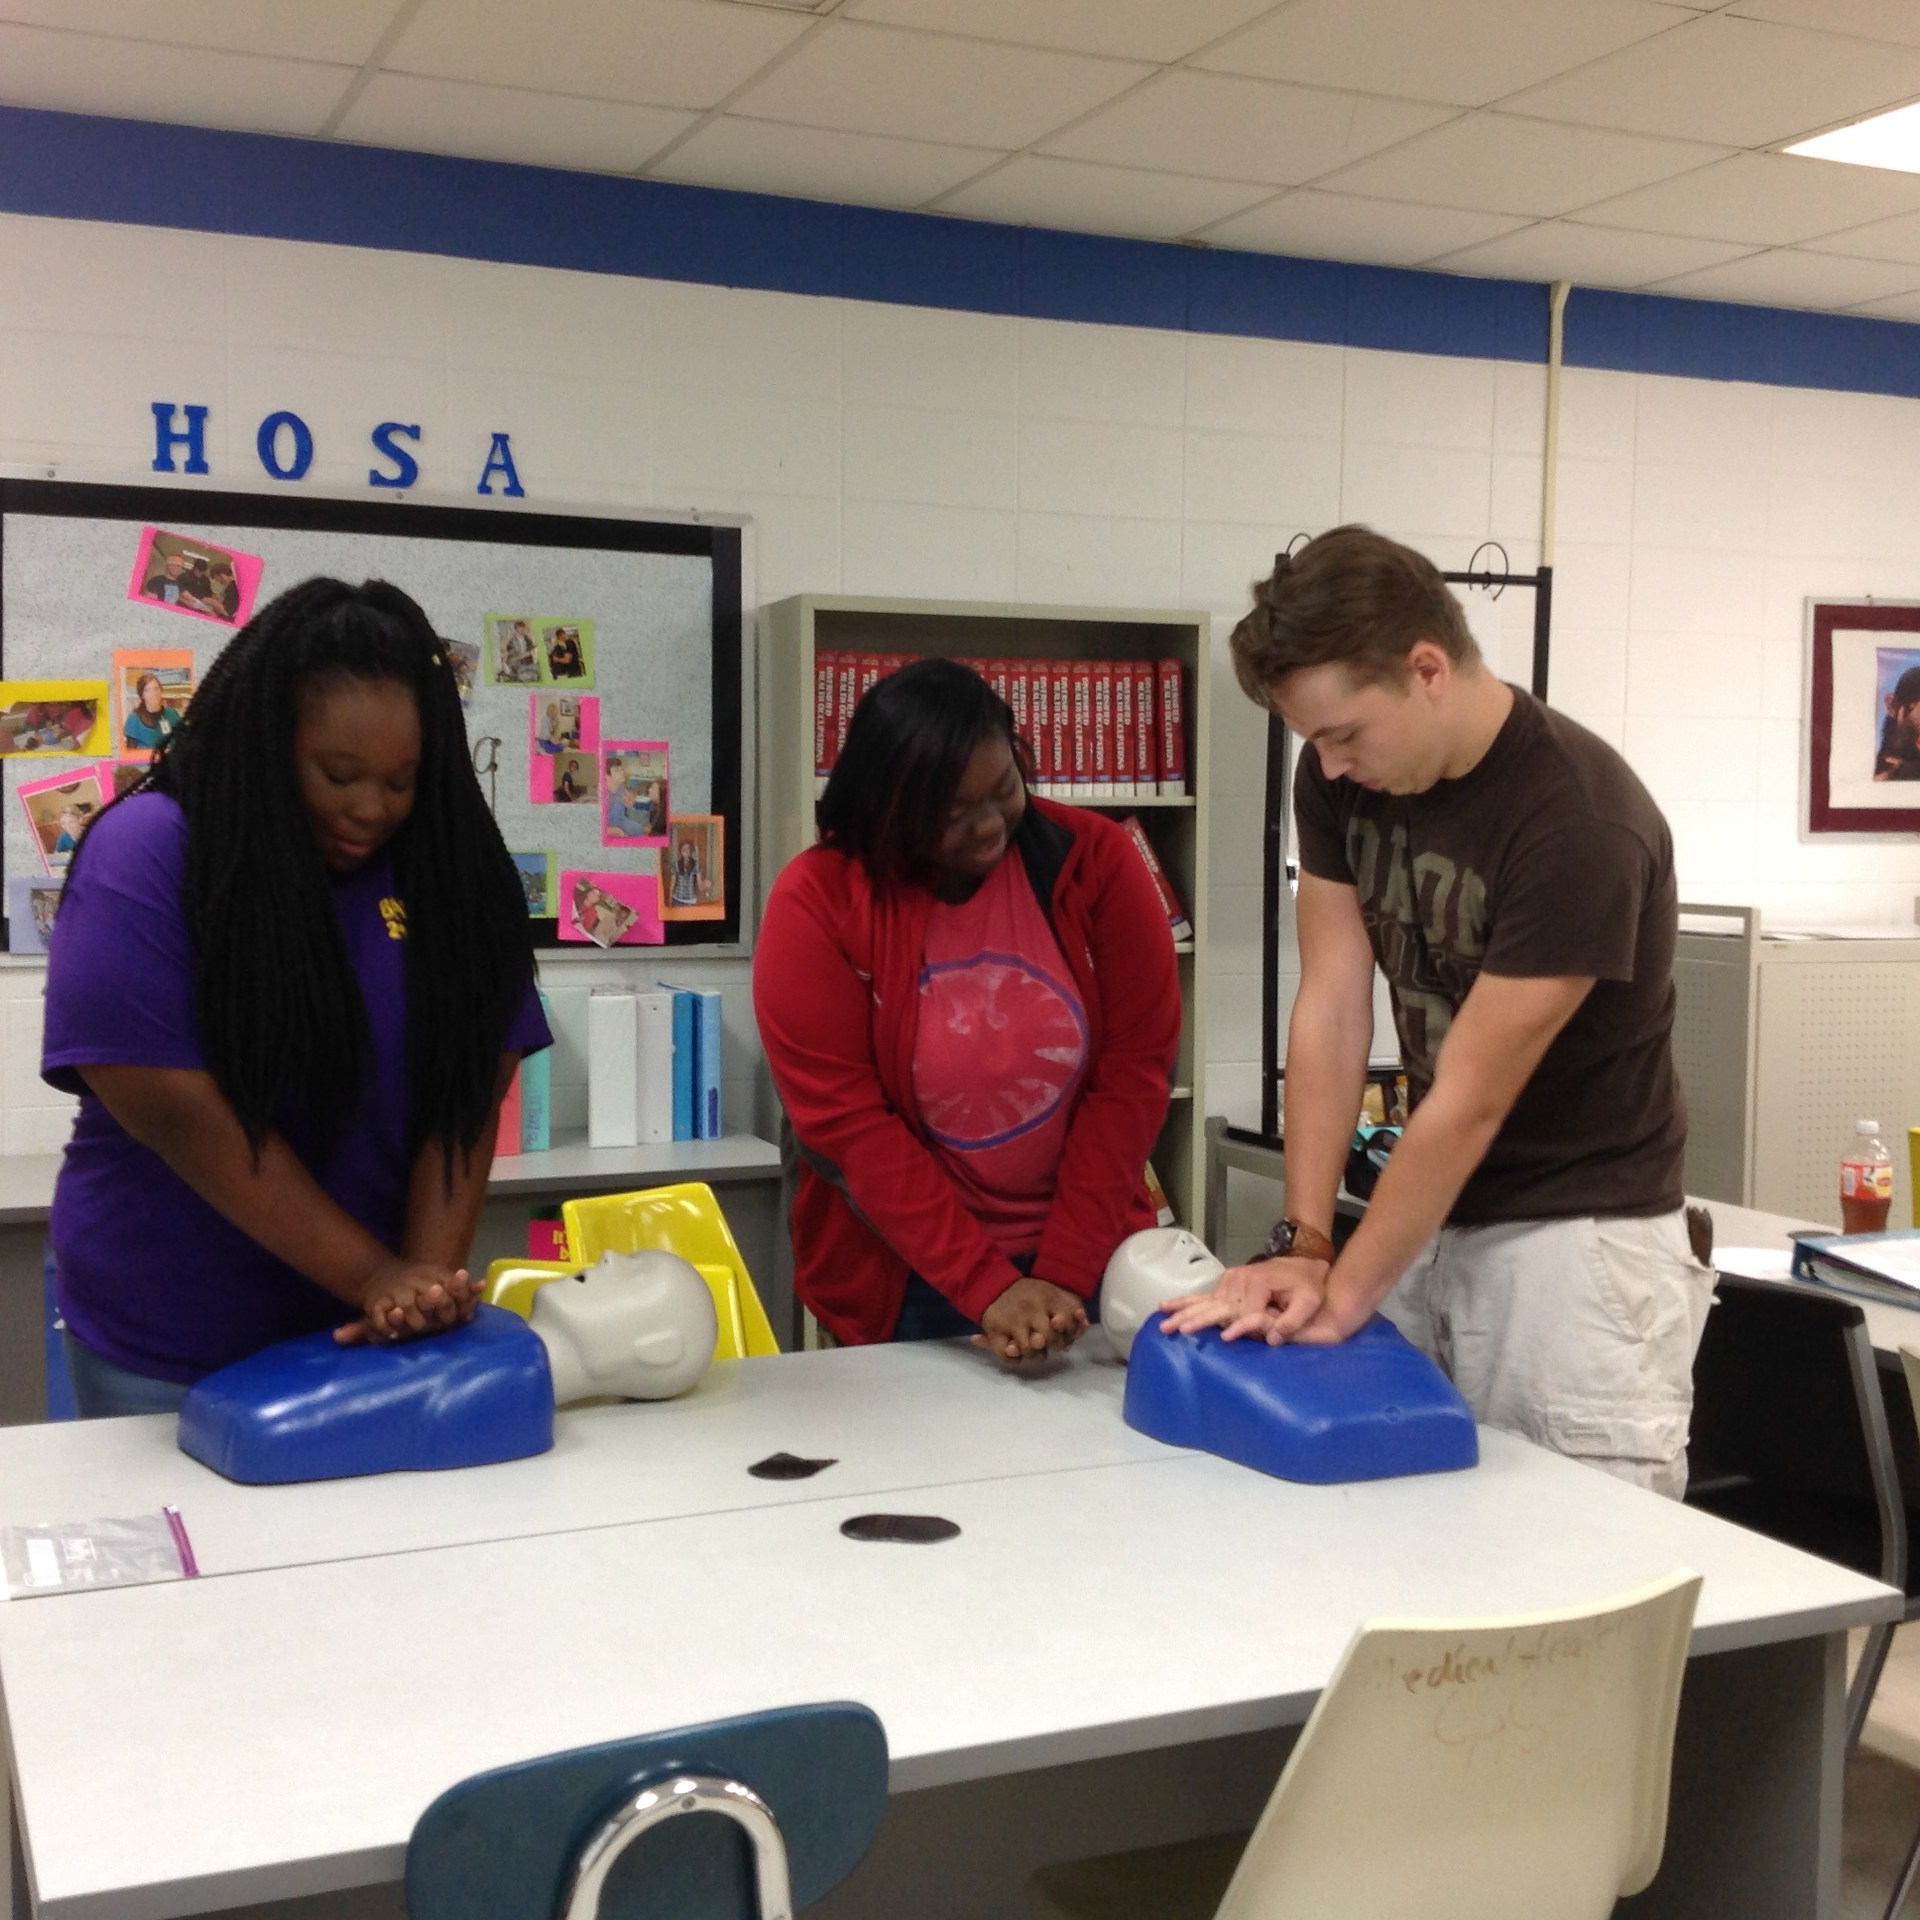 HOSA in the lab